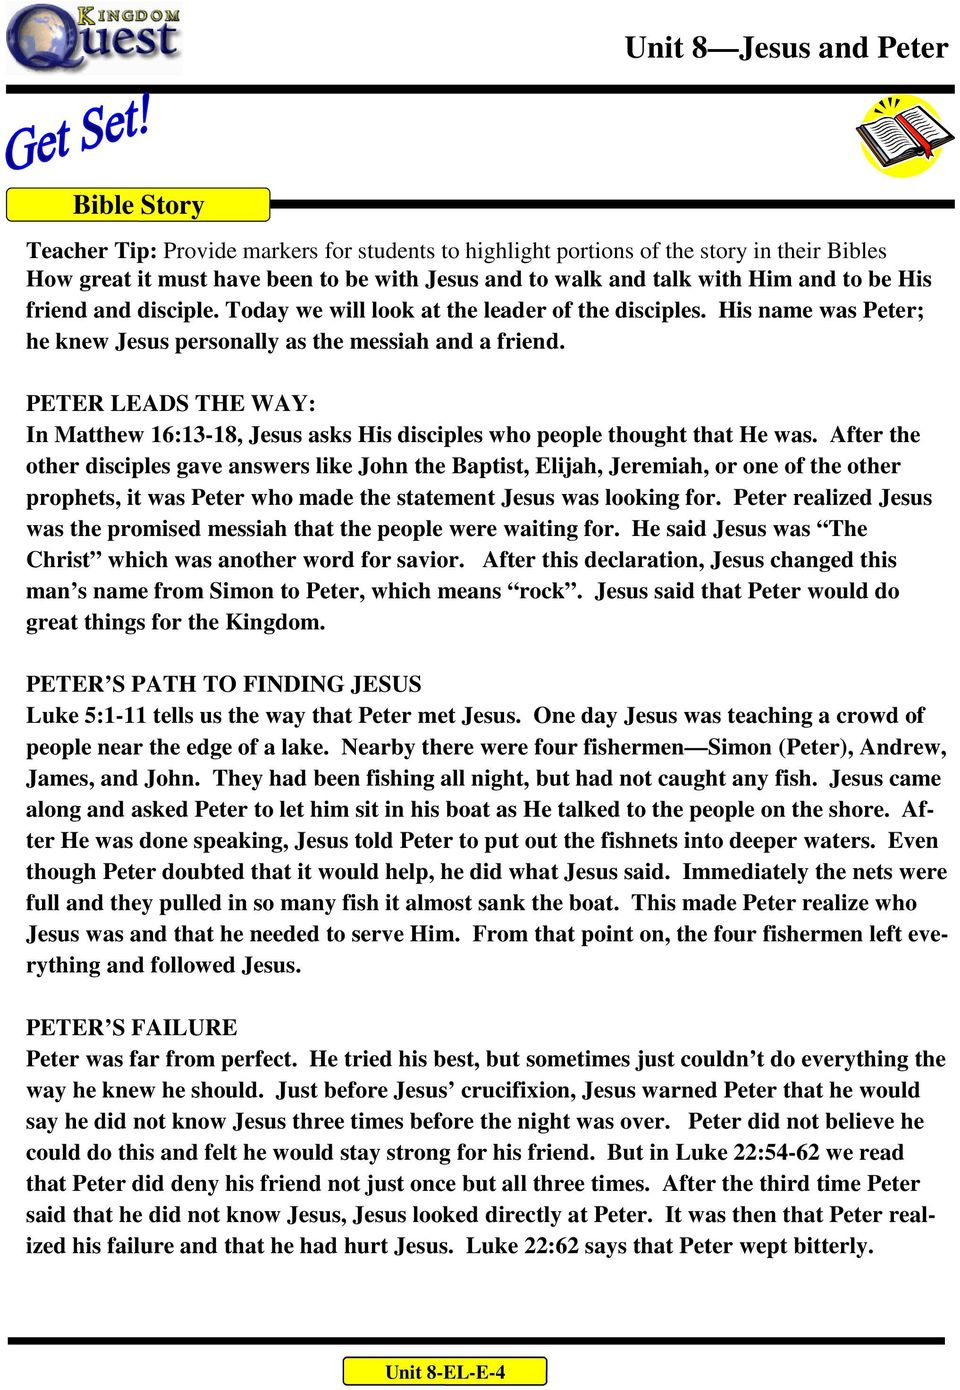 PETER LEADS THE WAY: In Matthew 16:13-18, Jesus asks His disciples who people thought that He was.